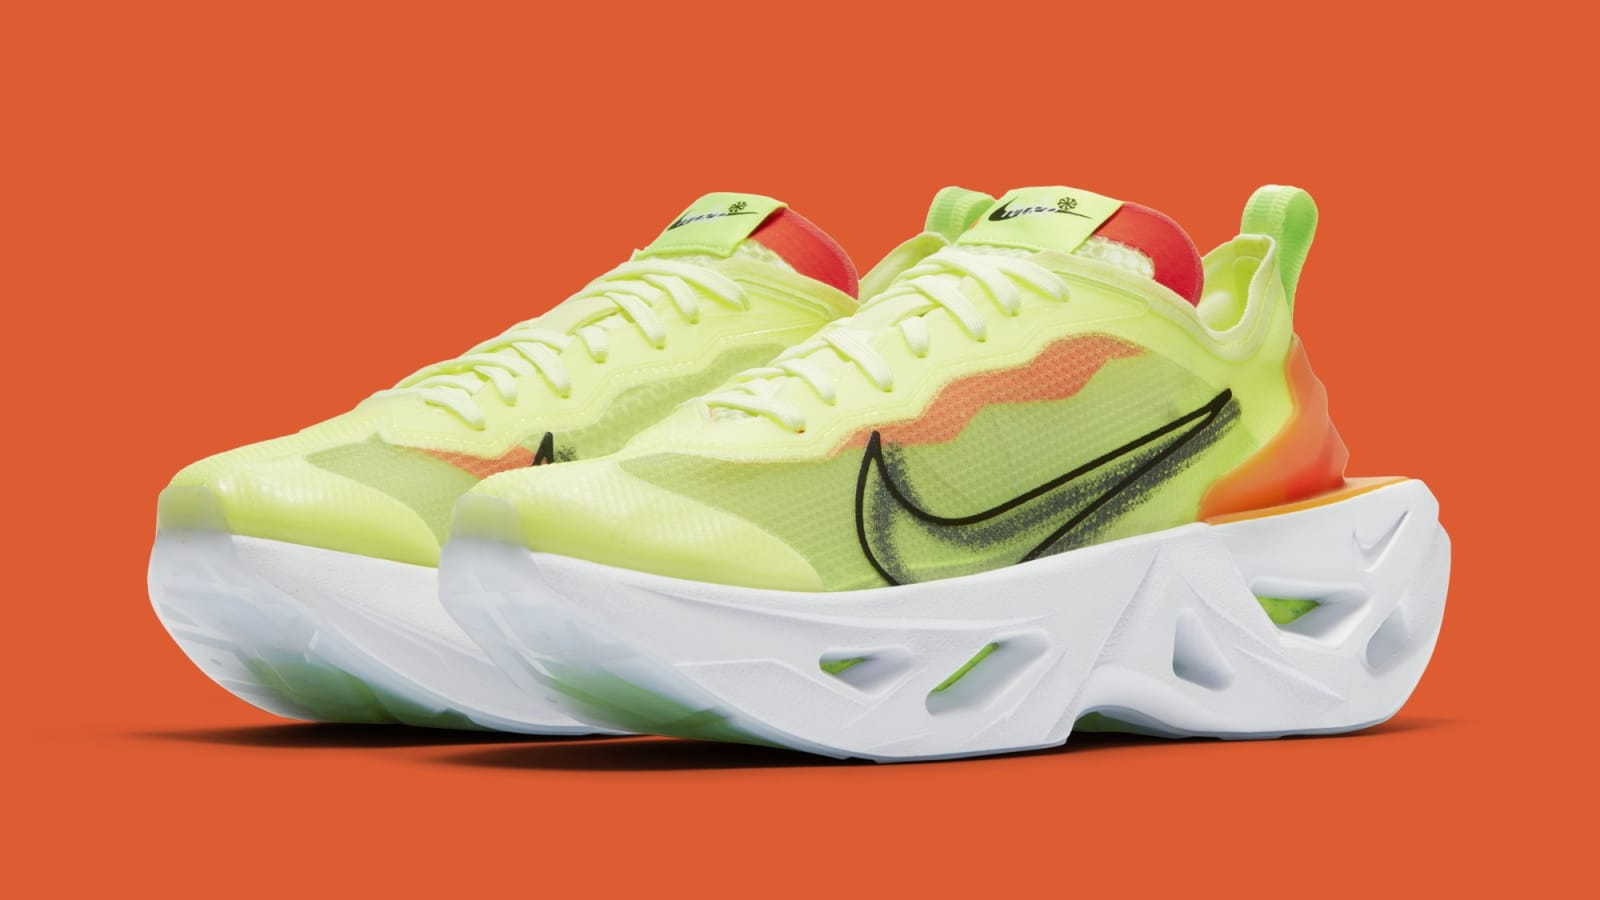 Nike Zoom X Vista Grind Is A Dad Shoe Lover's Dream: Official Photos